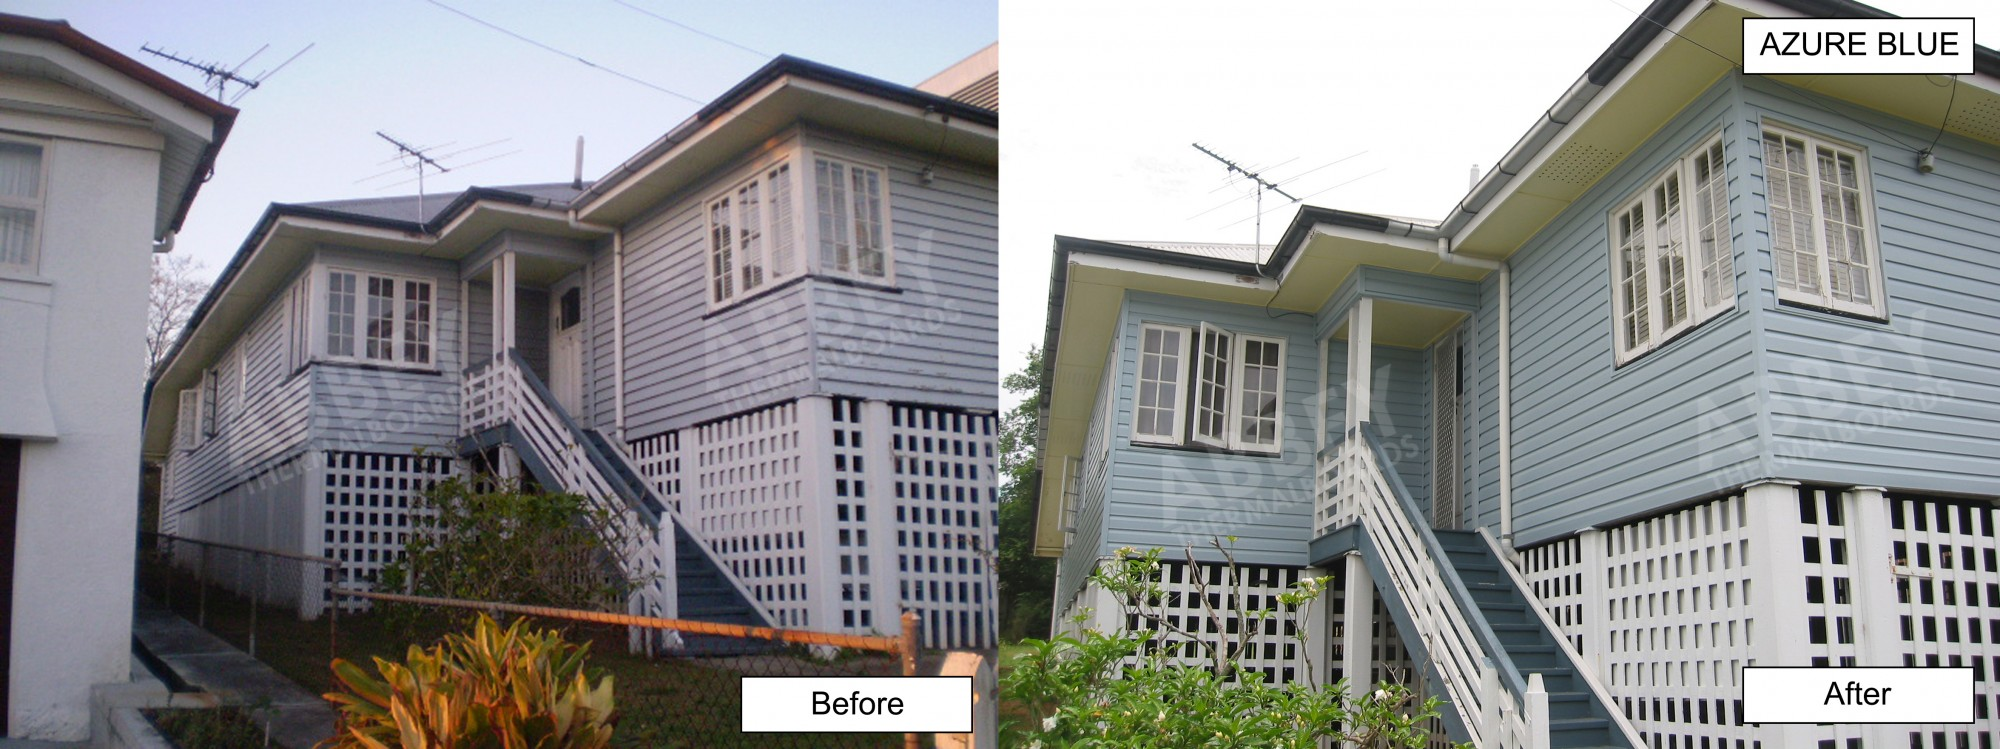 Looking at the before and after of a cladding job by Abbey.